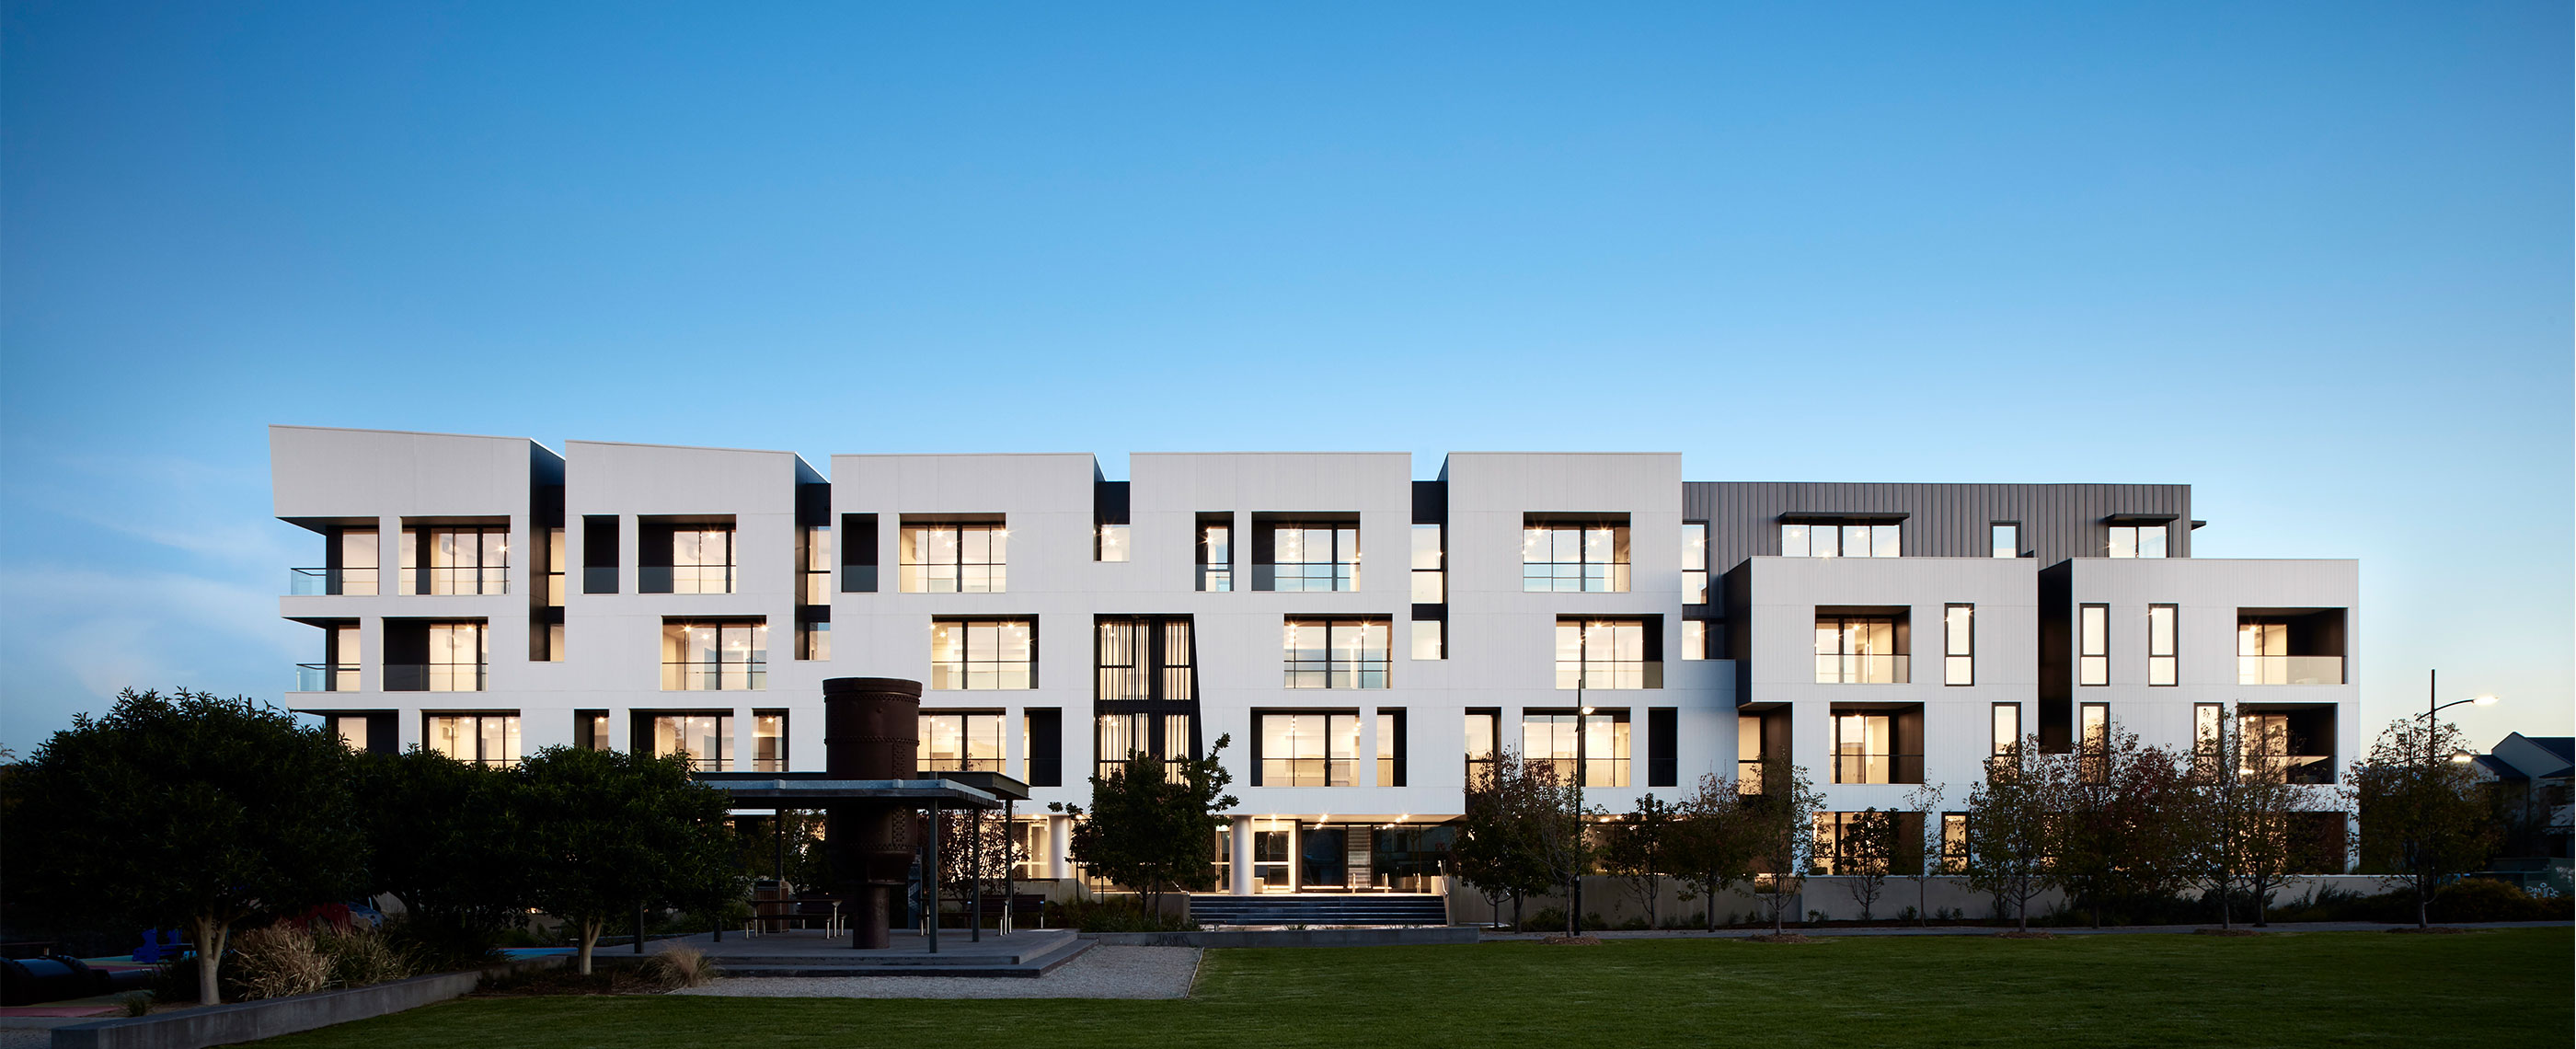 Botanica Apartments Rothelowman Architecture project